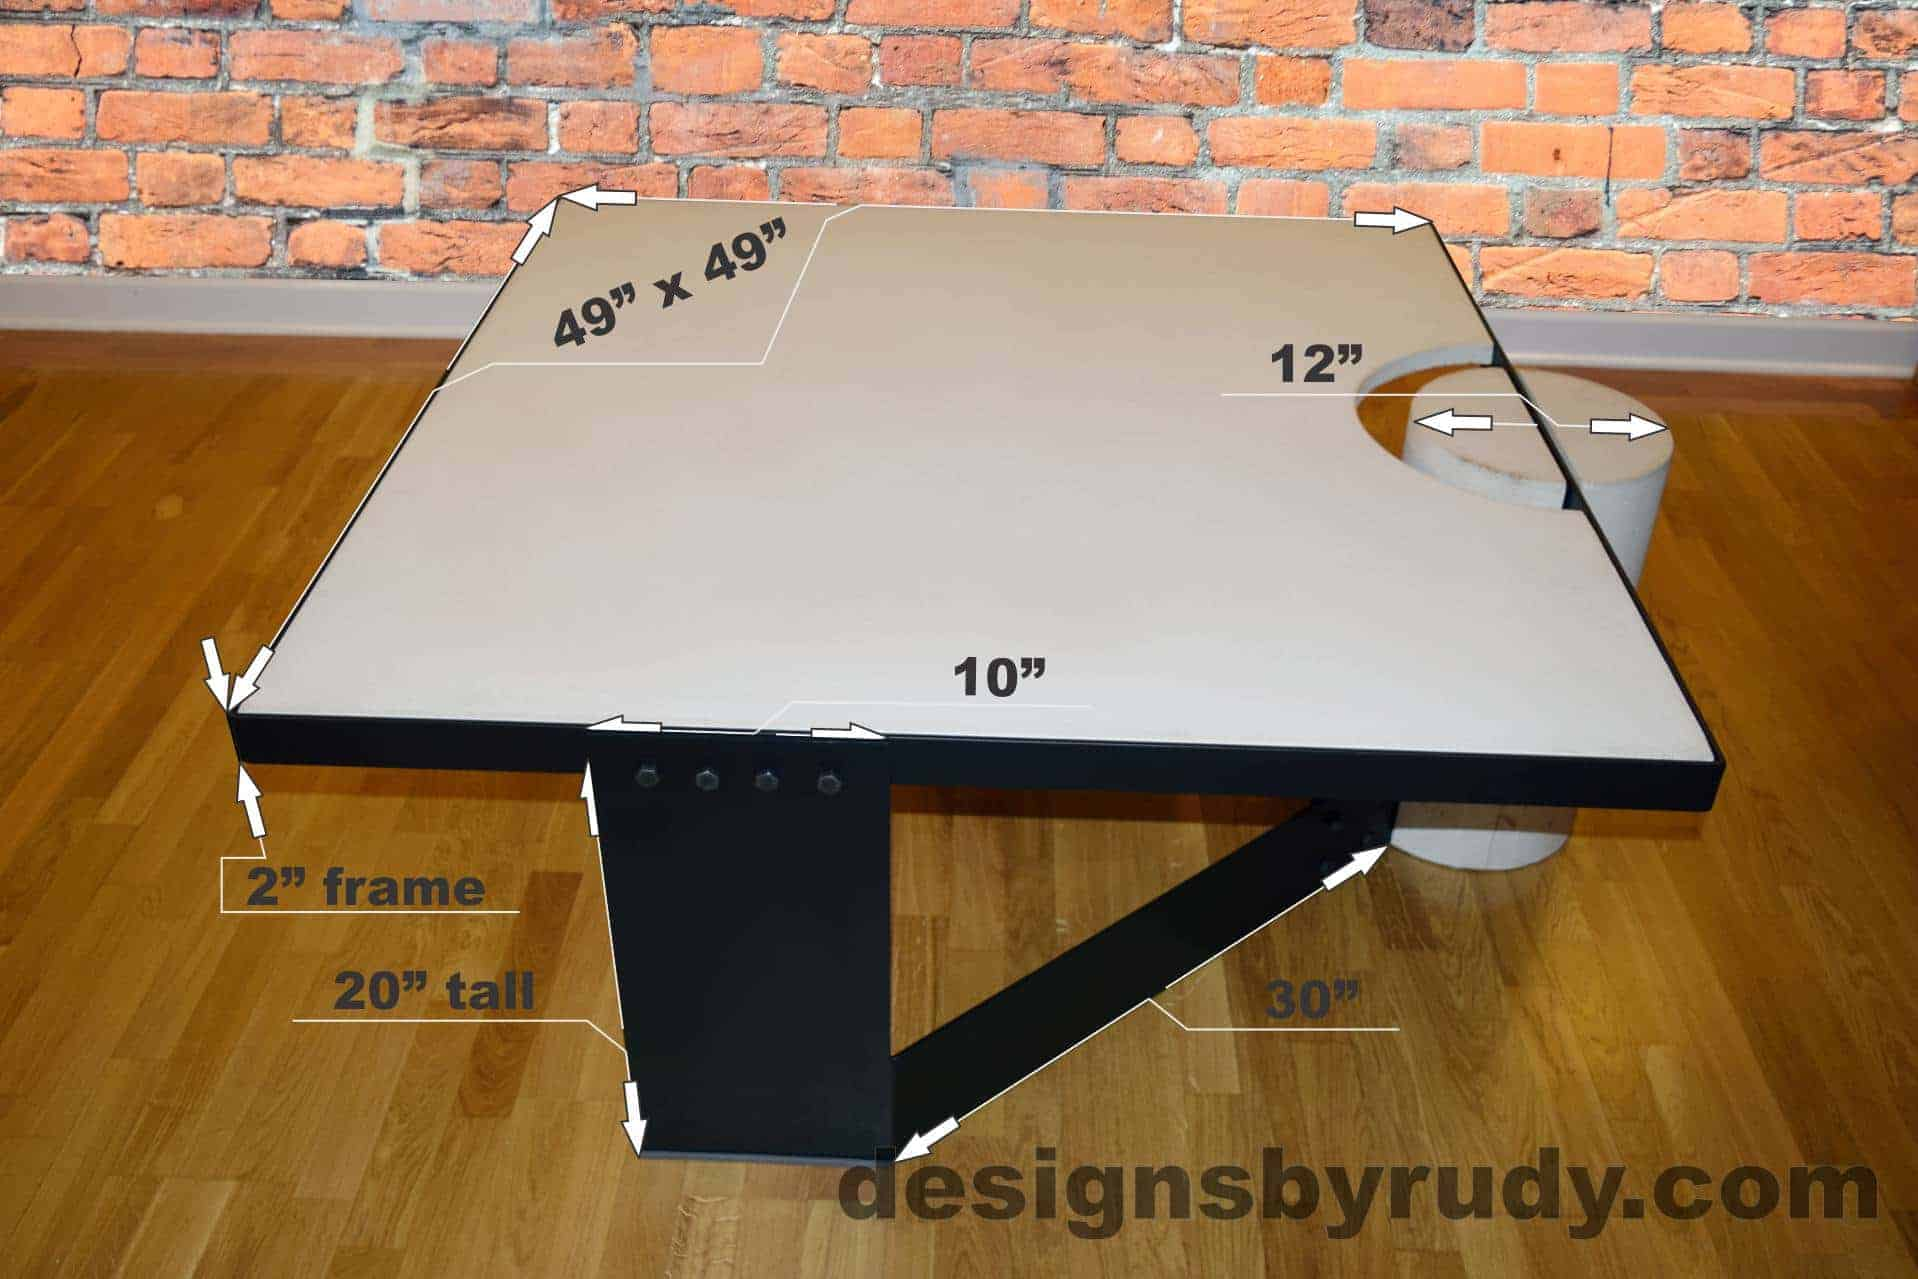 White Concrete Coffee Table, Black Steel Frame, dimensions, Designs by Rudy small